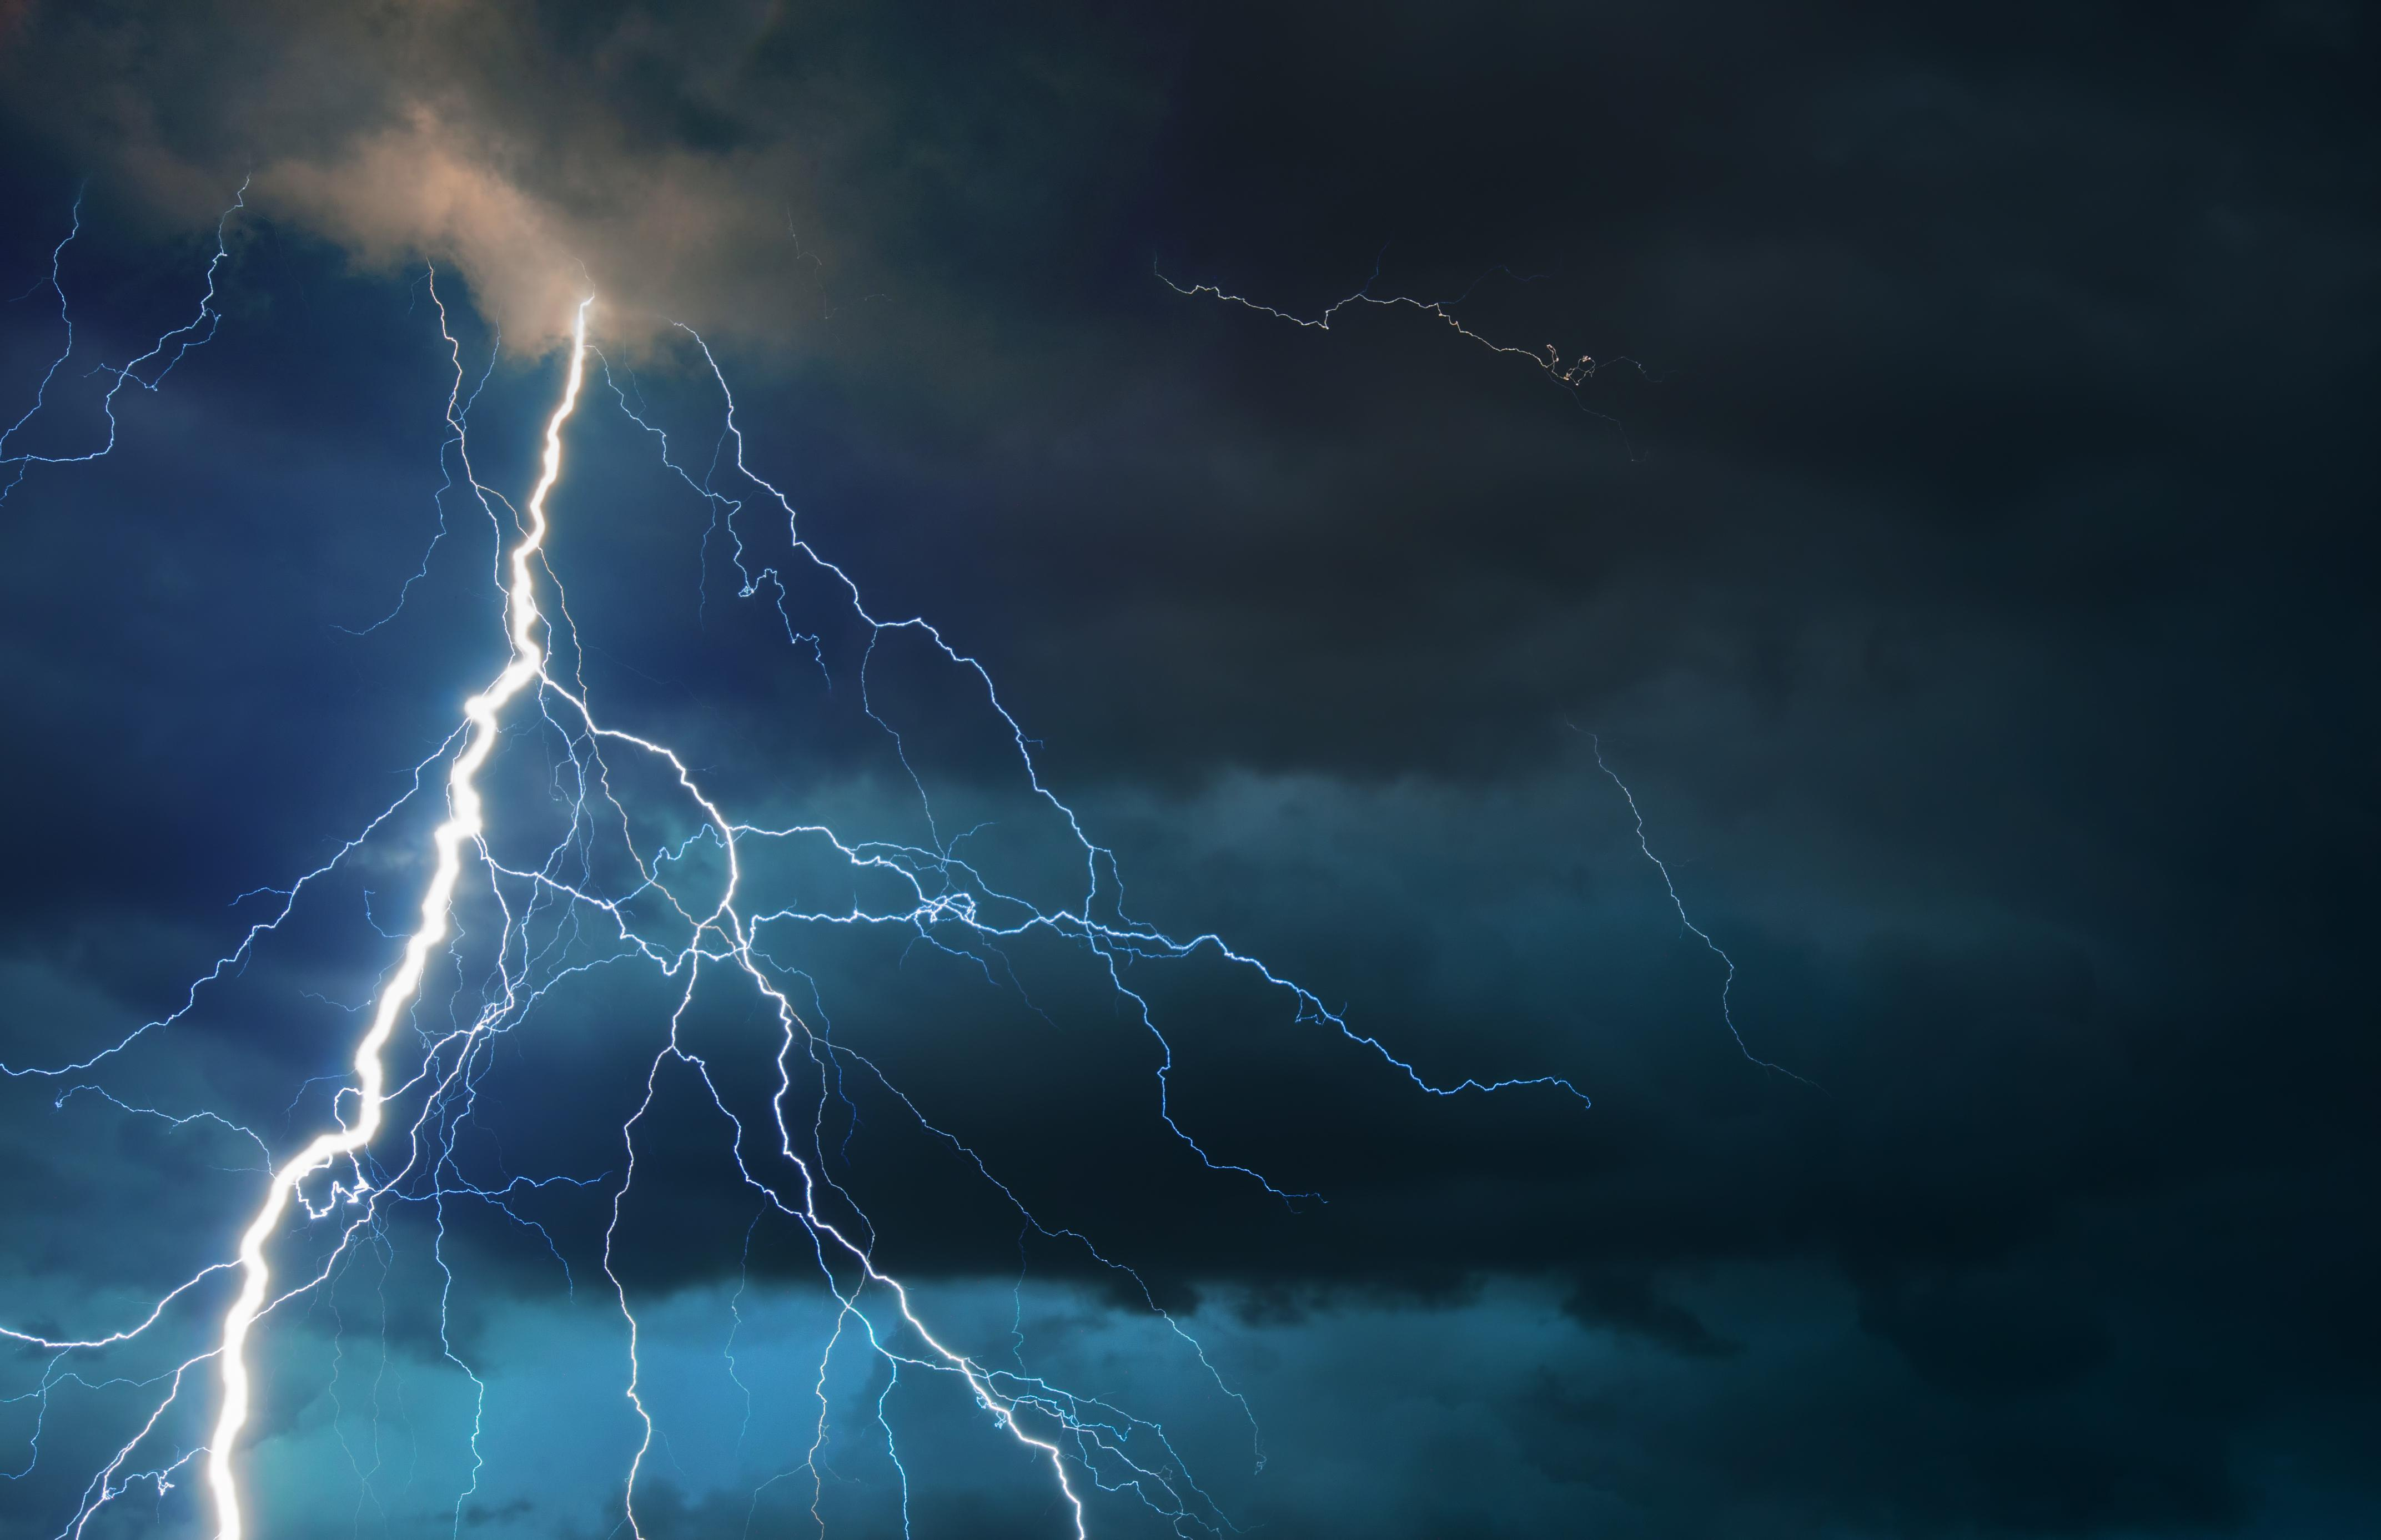 image-of-a-storm